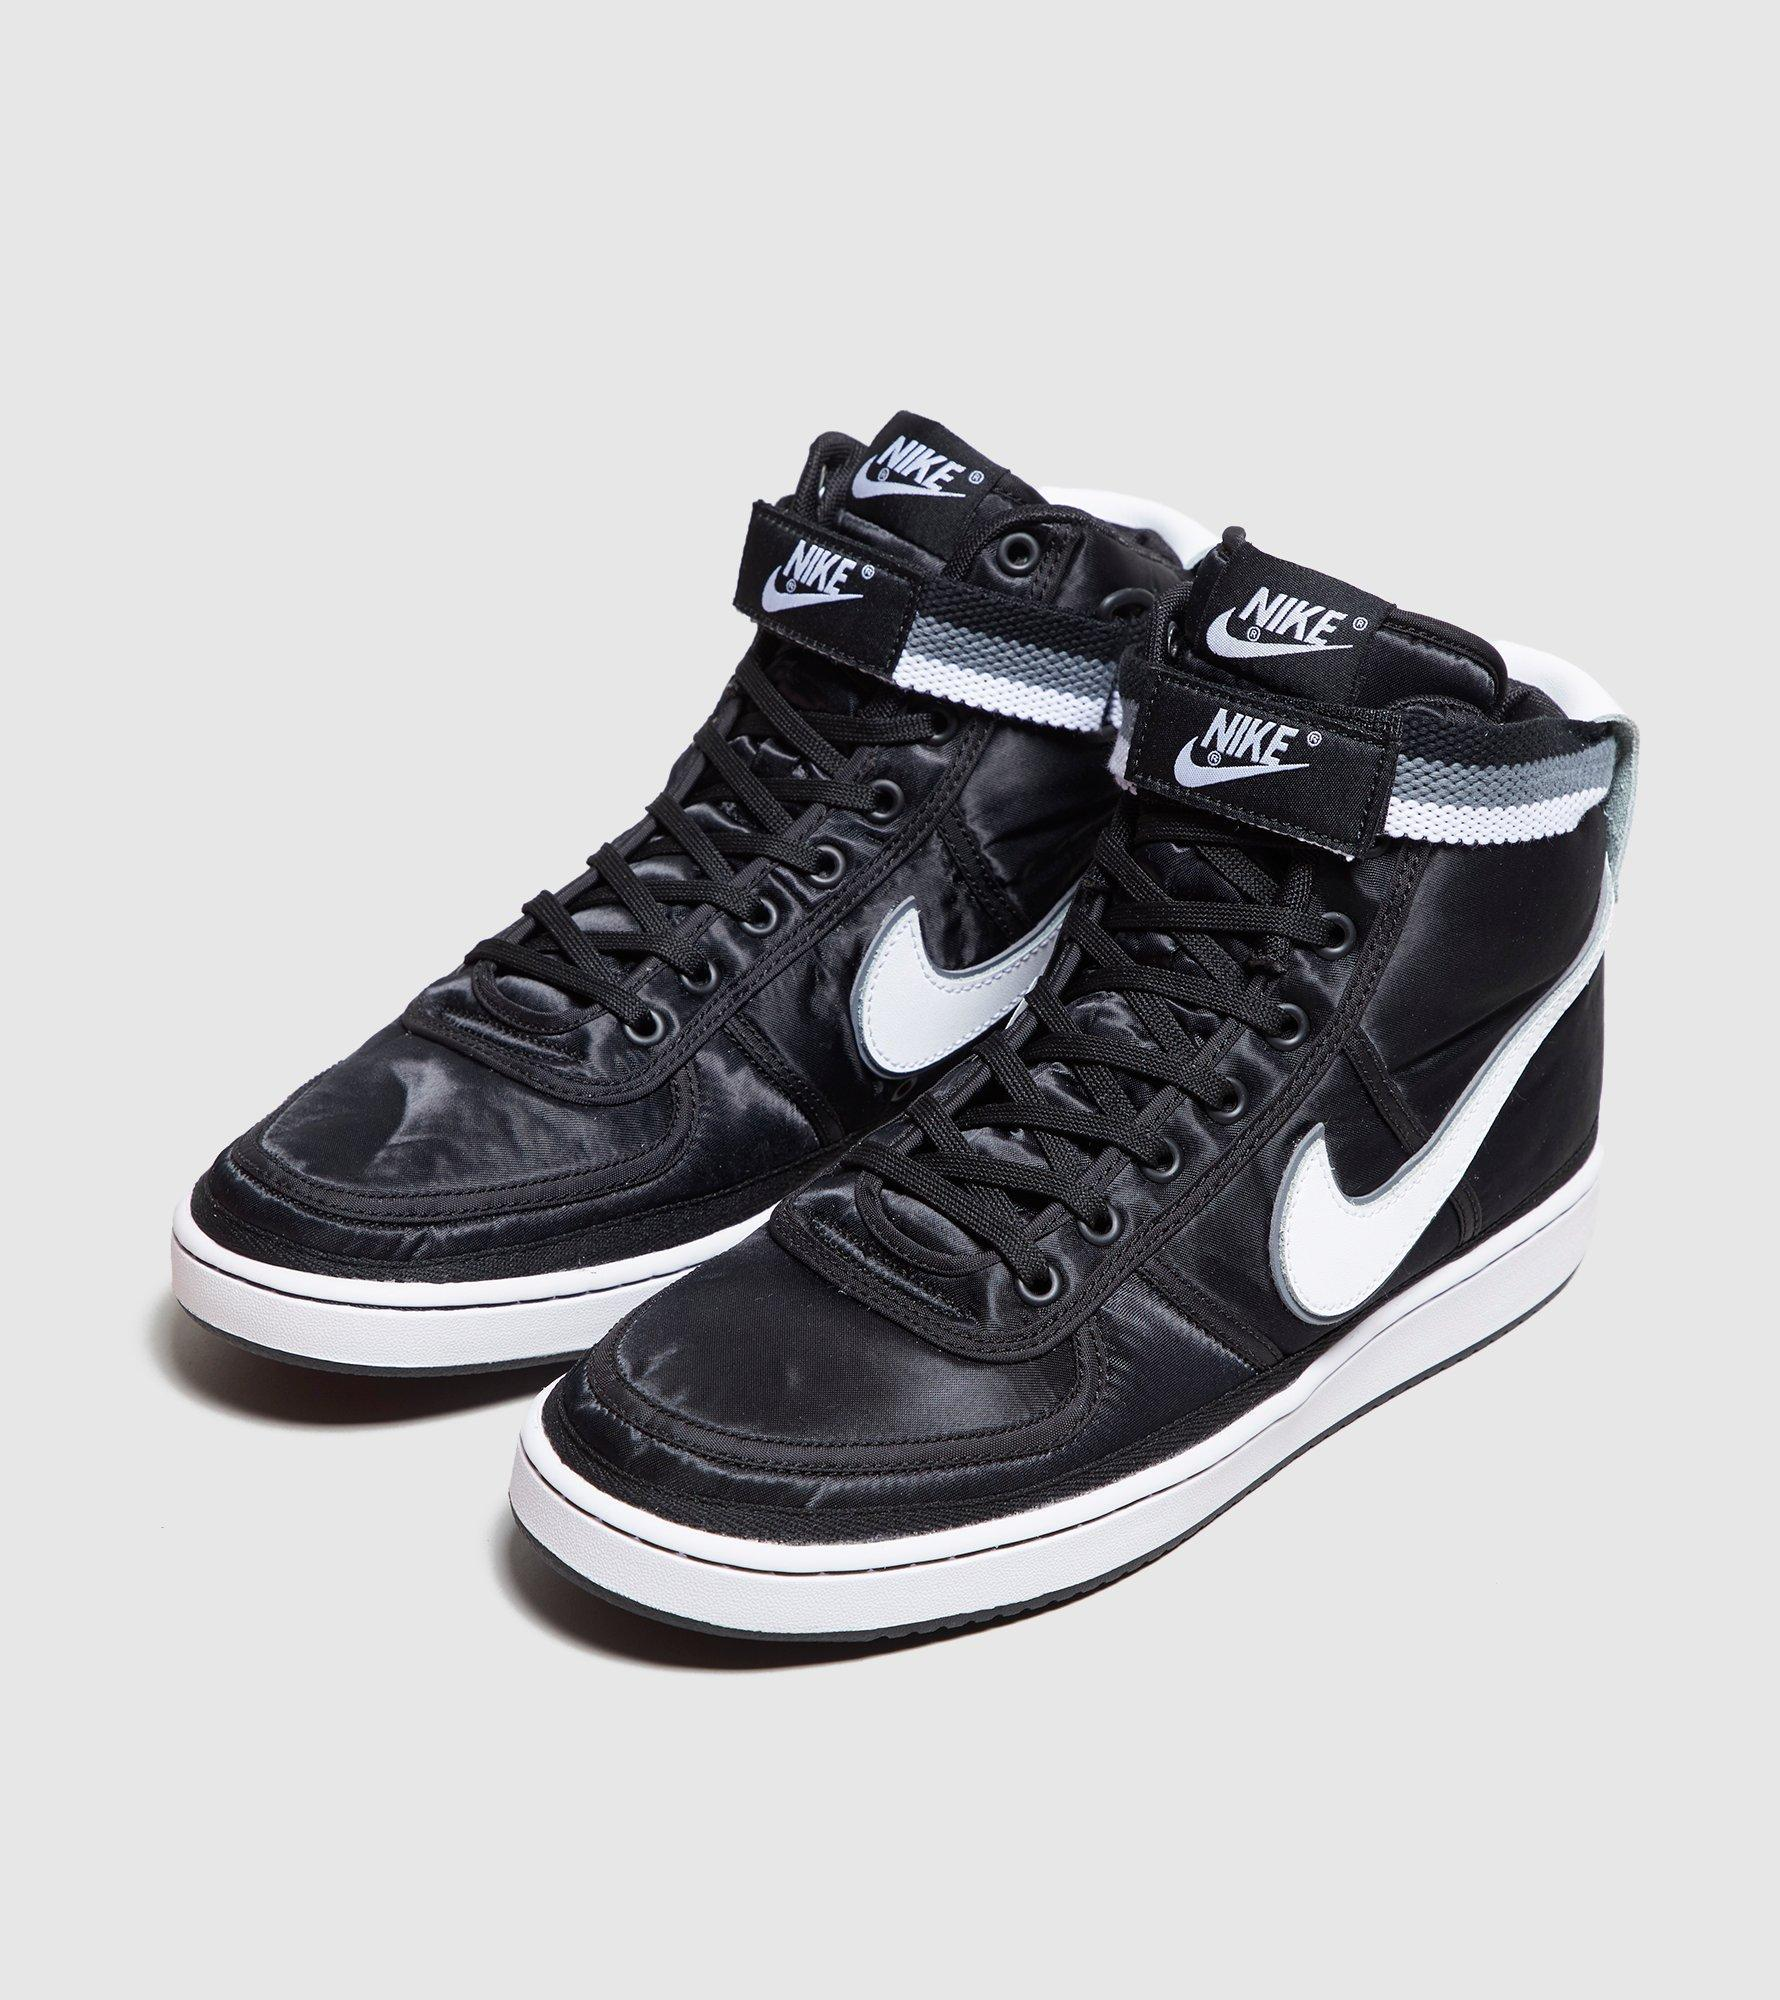 Nike Vandal Shoes For Sale